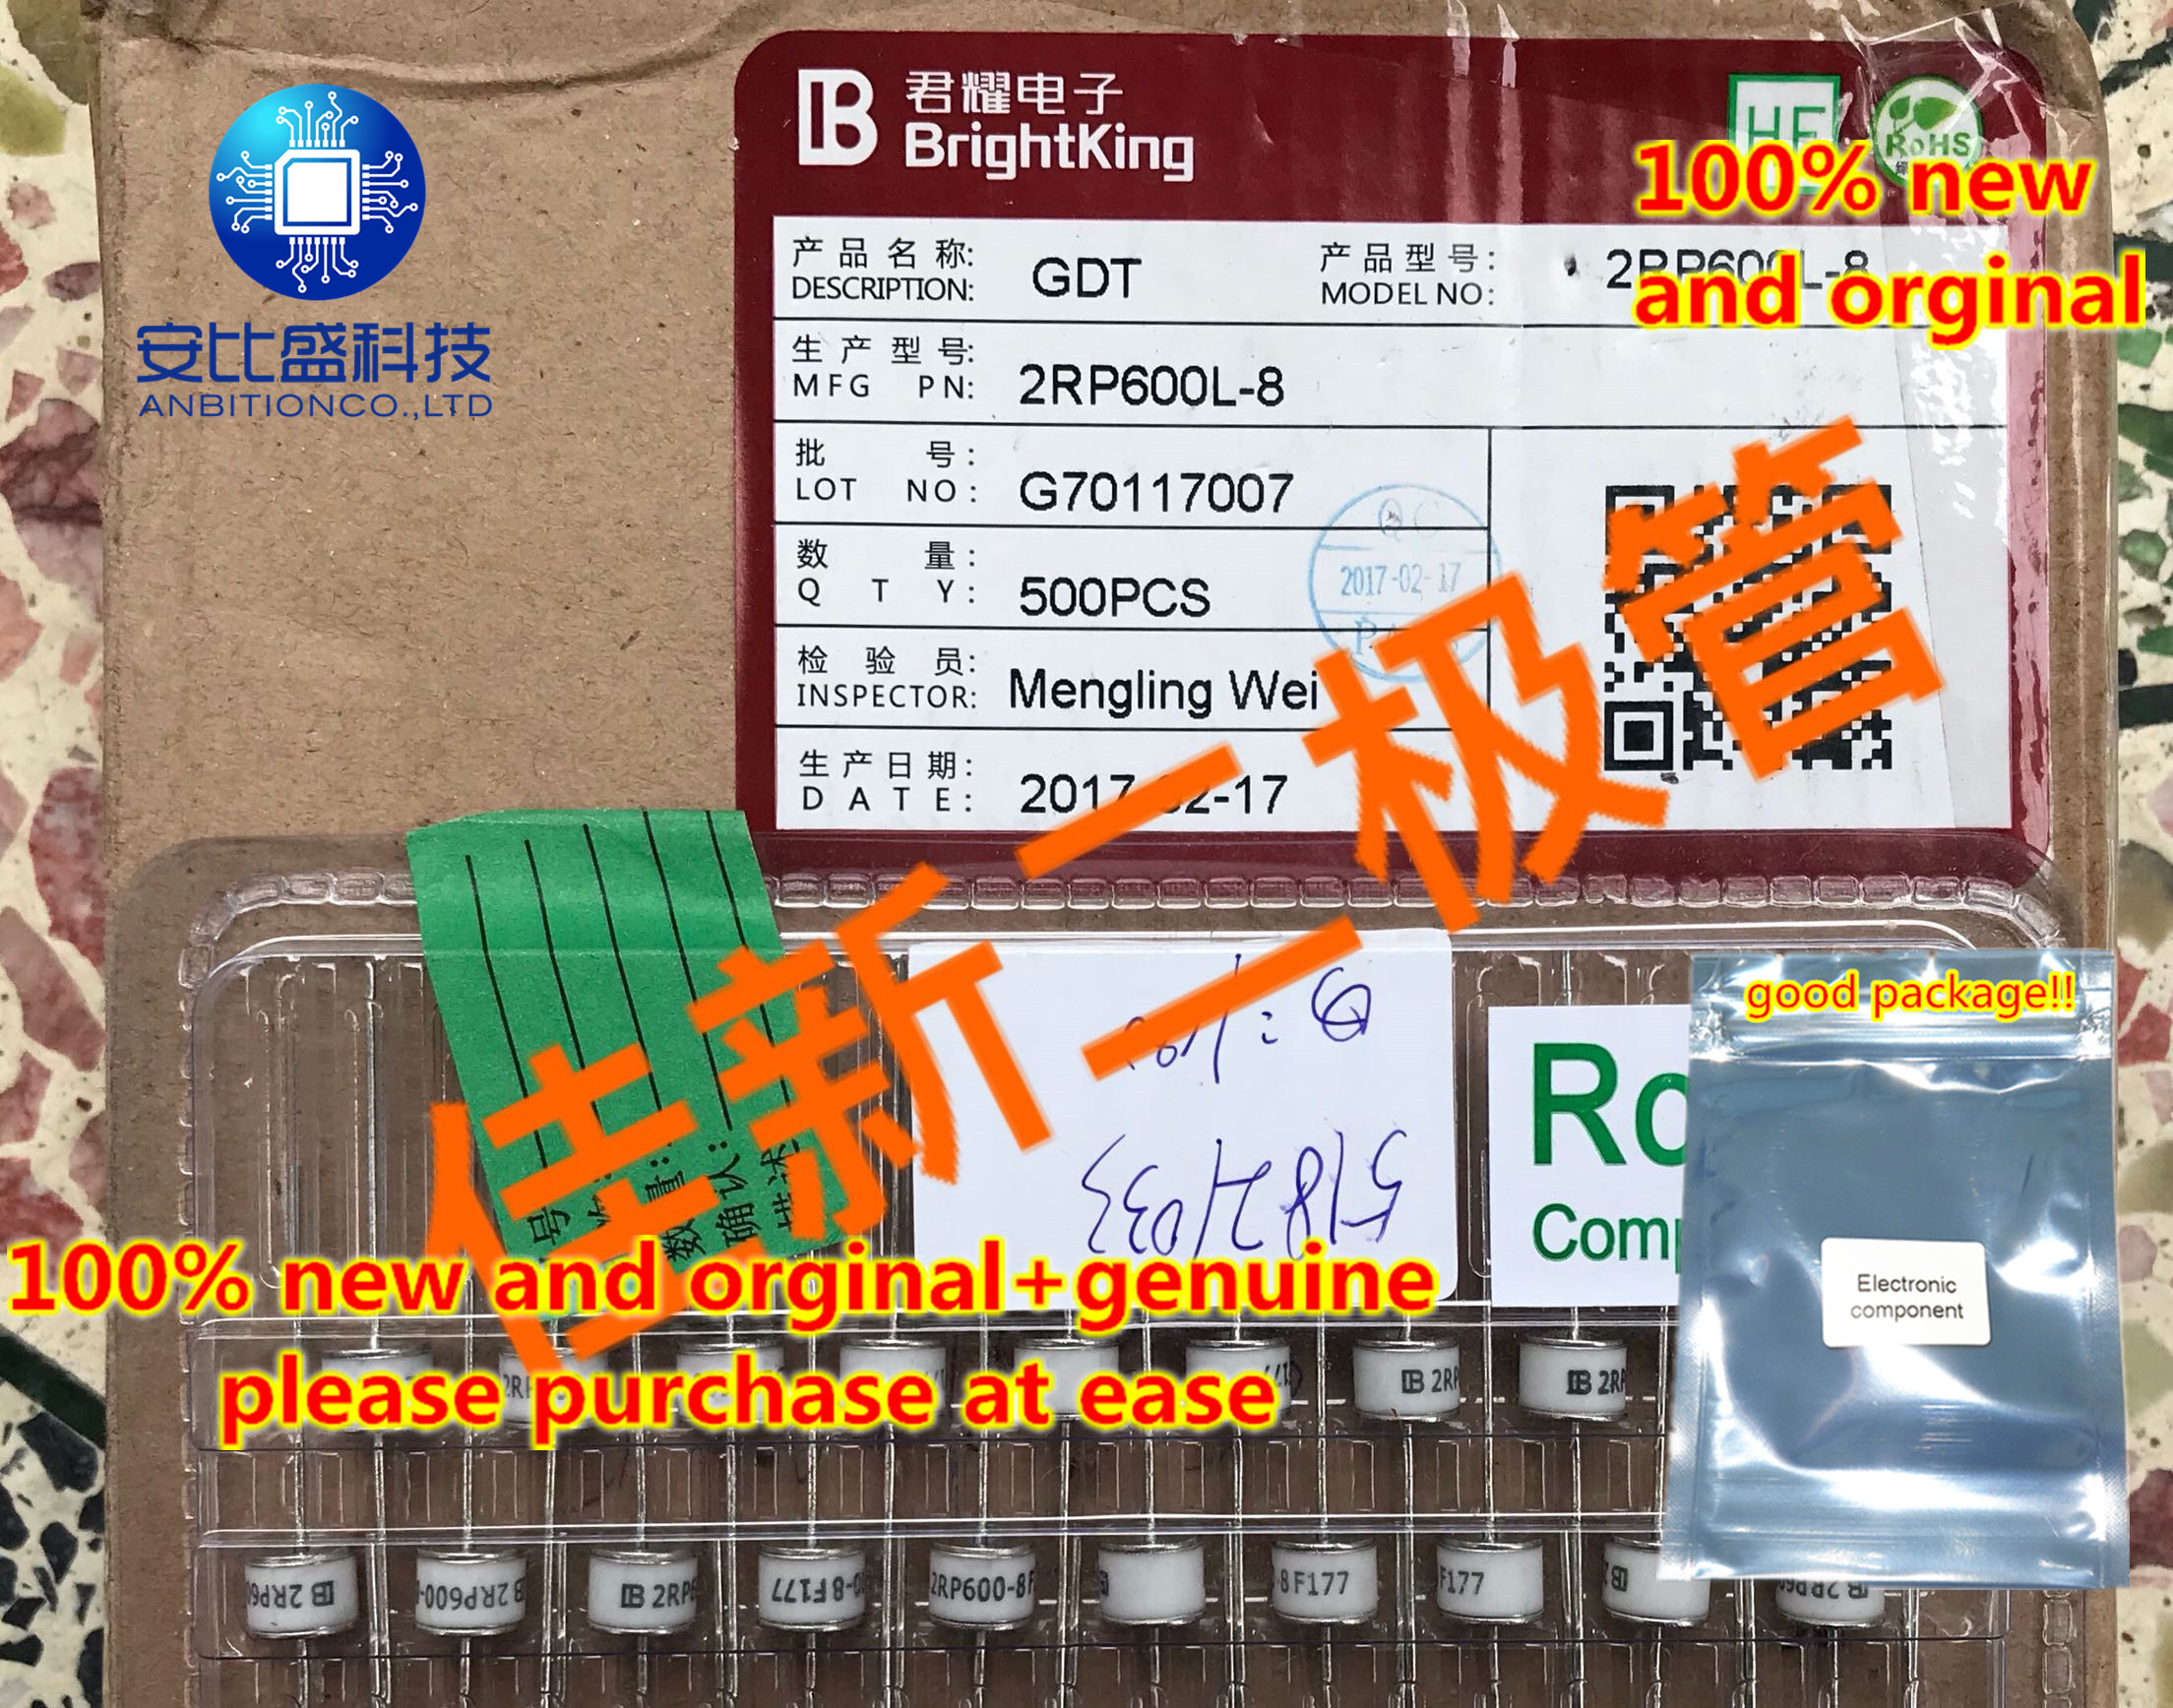 20pcs 100% New And Orginal 2RP600L-8 2RM600L-8600V Ceramic Gas Discharge Tube 10KA Size 6x8 In Stock